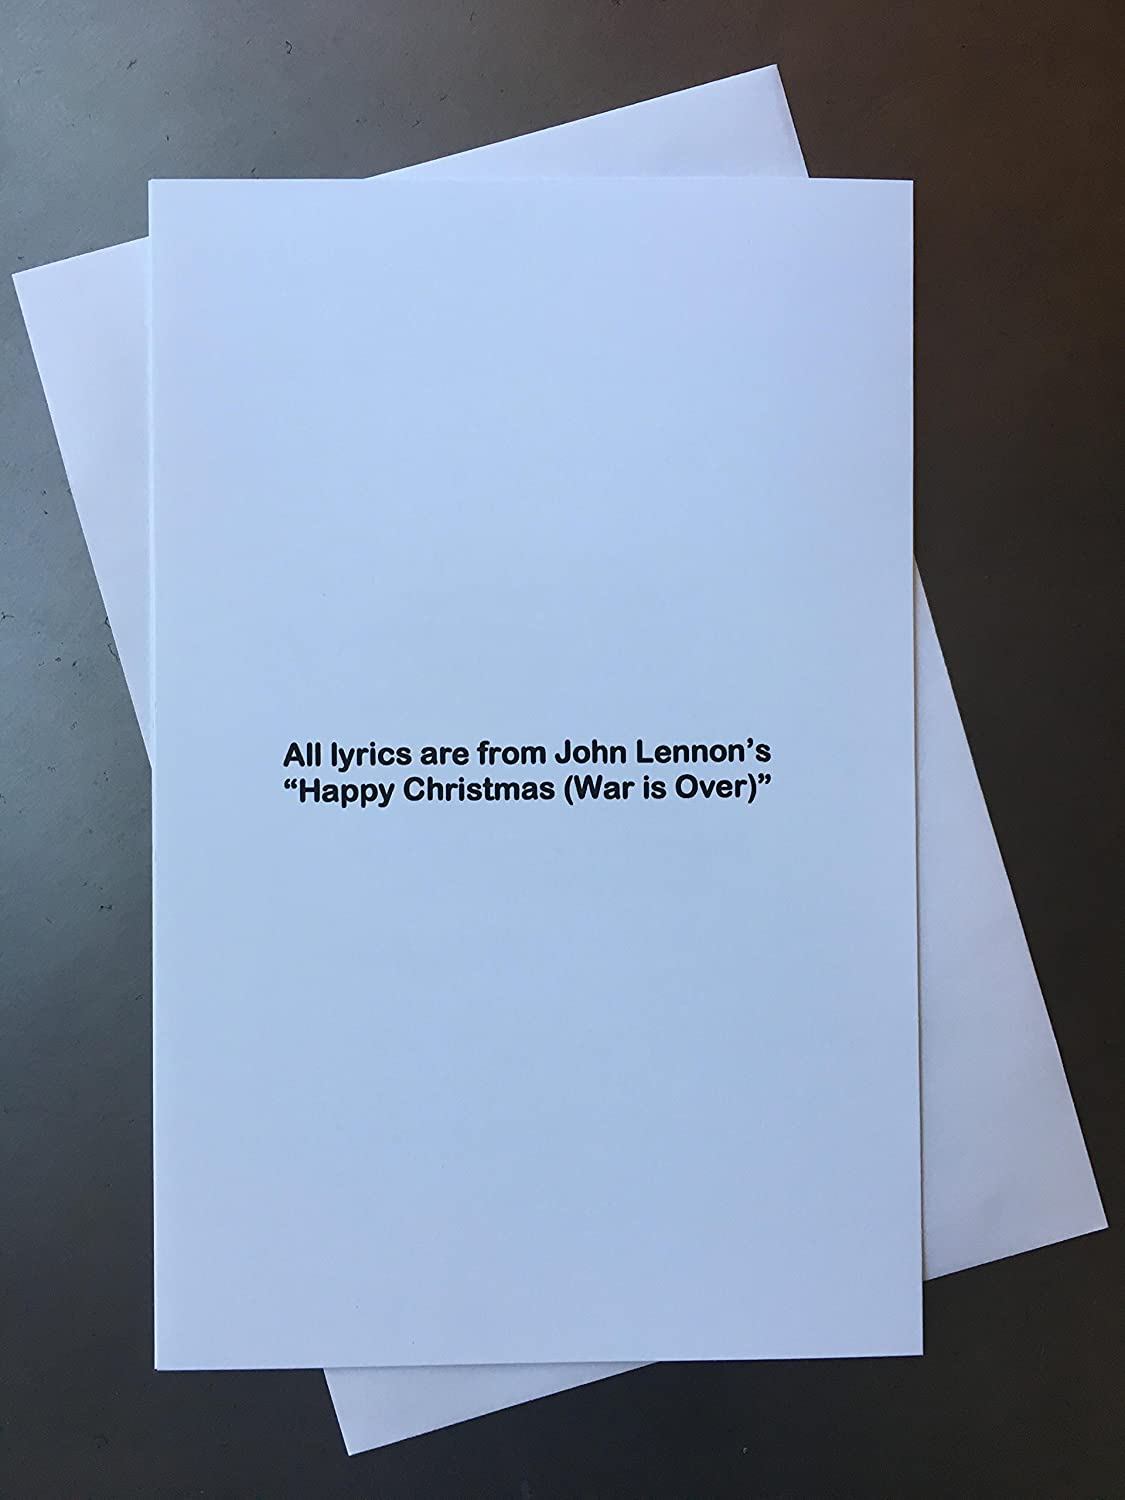 Amazon.com: The Beatles John Lennon Christmas Card Drawn From His ...